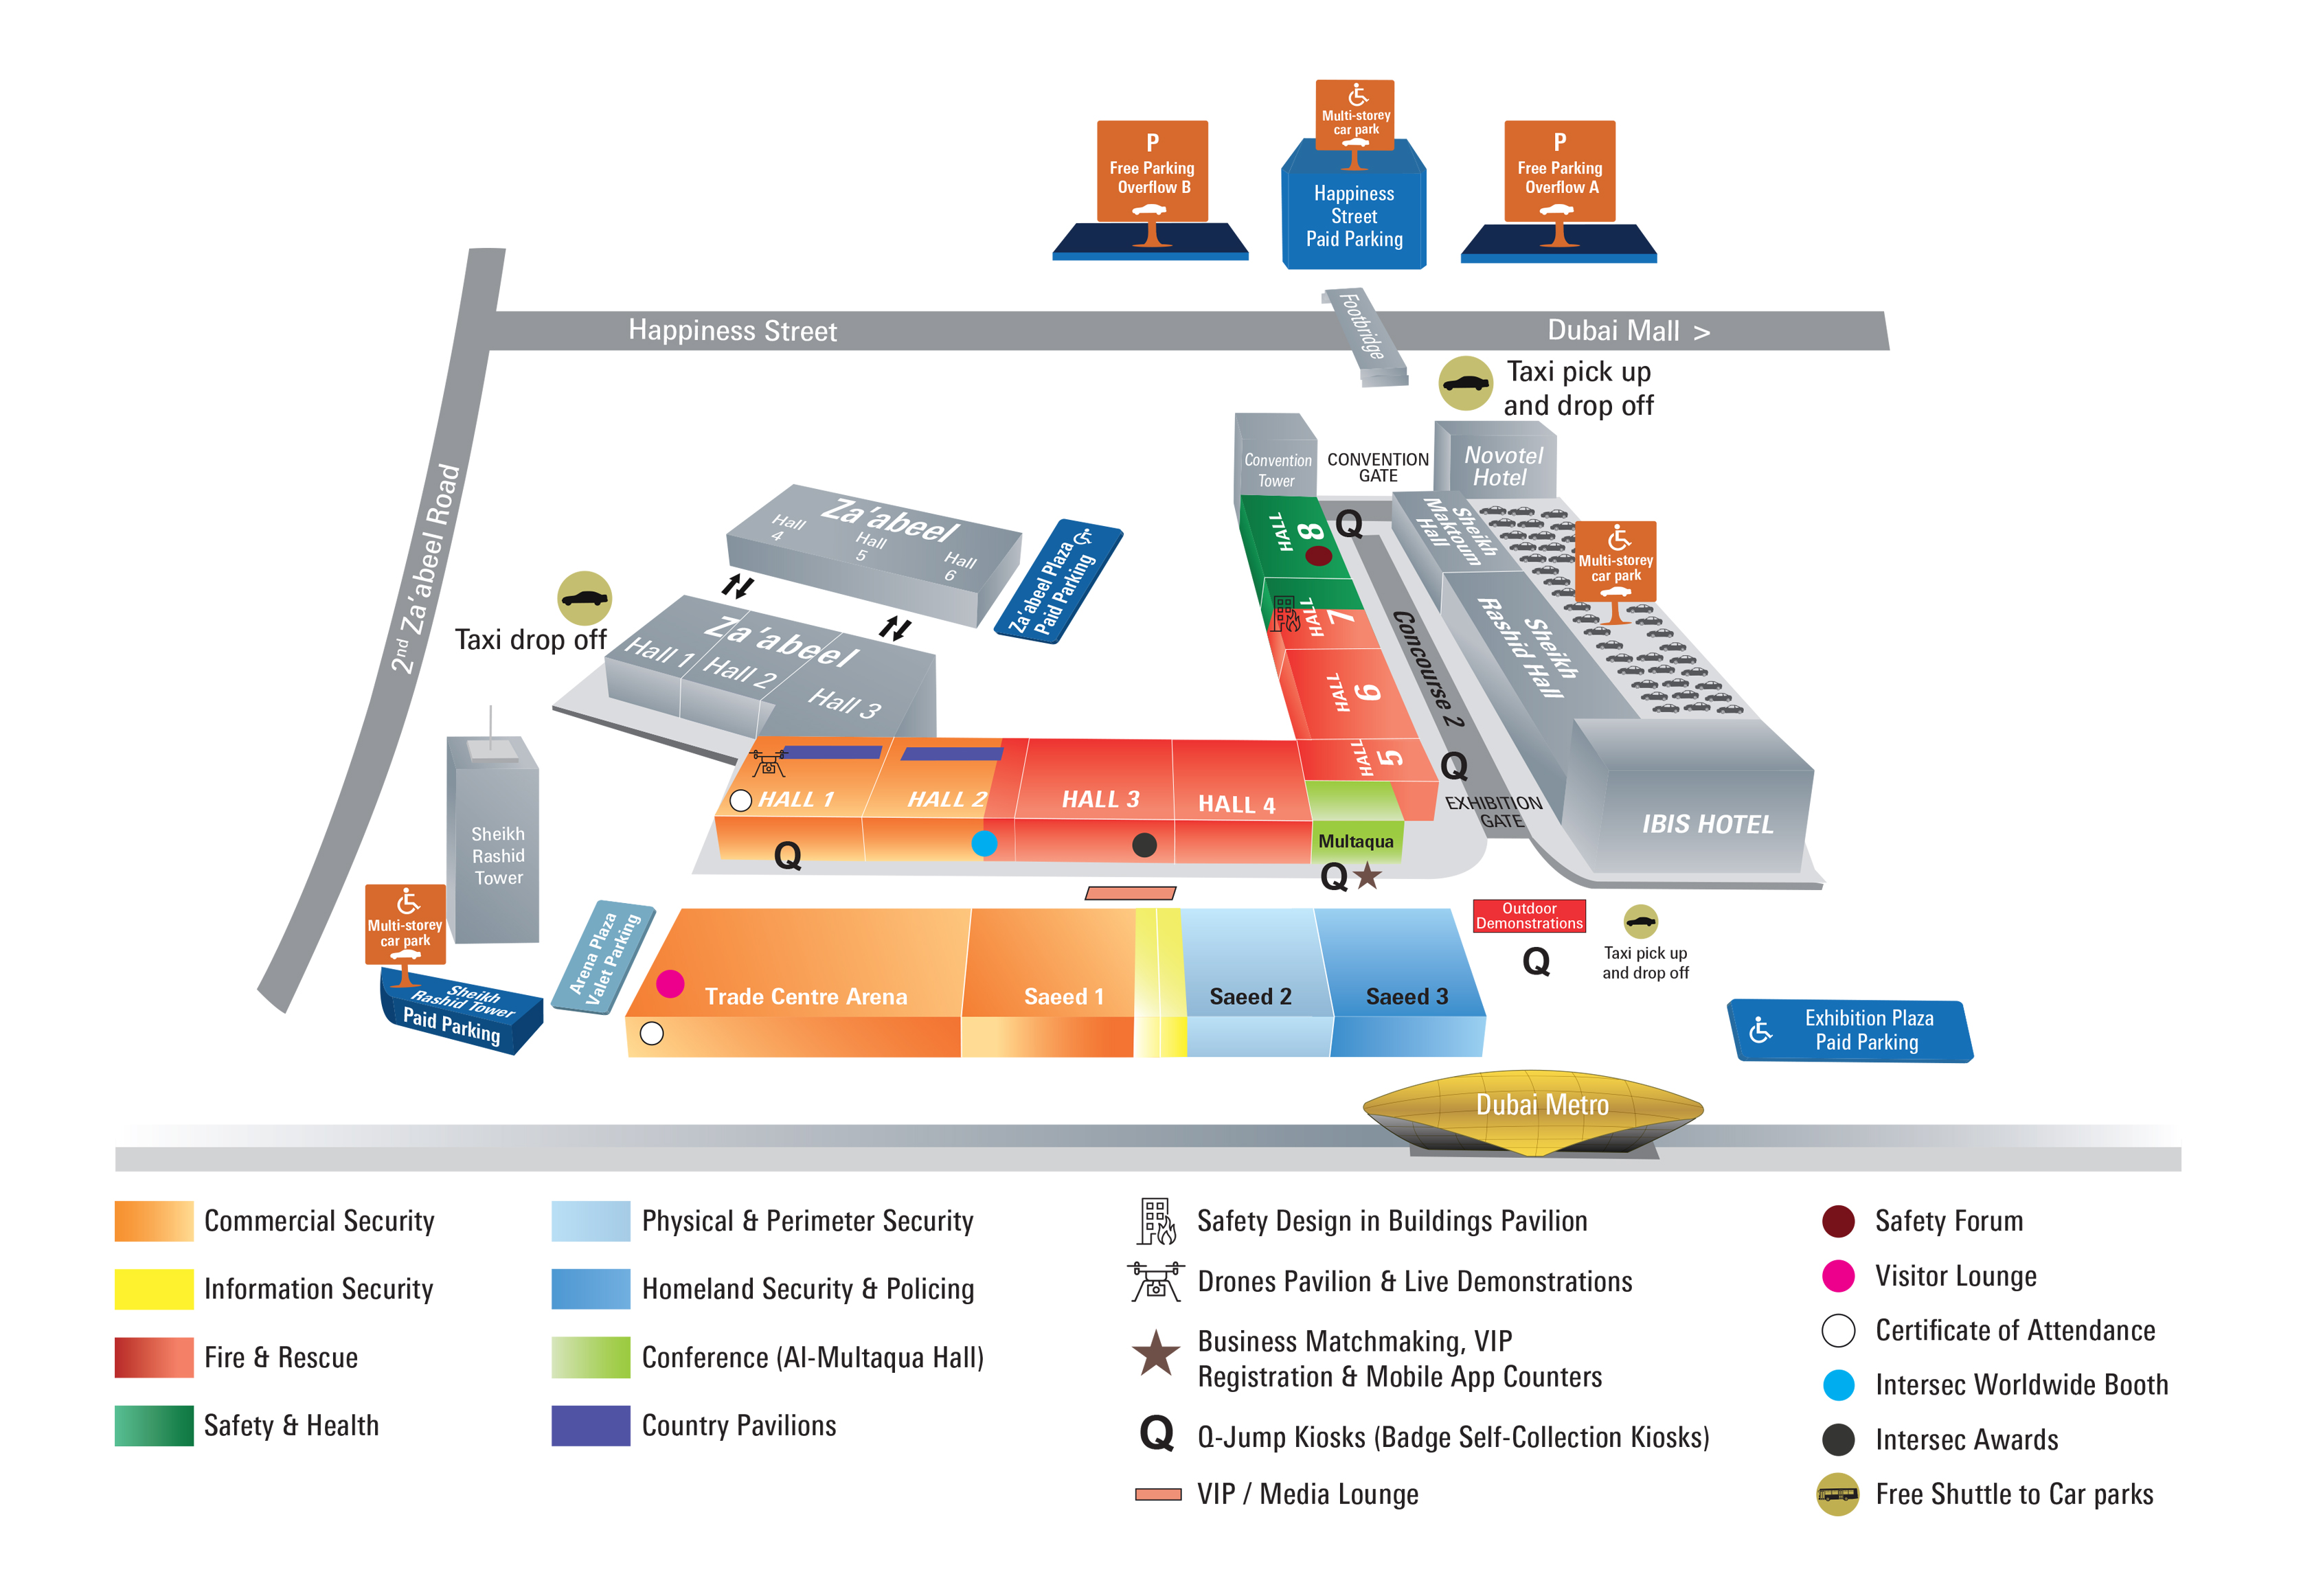 Intersec 2019 Venue Map